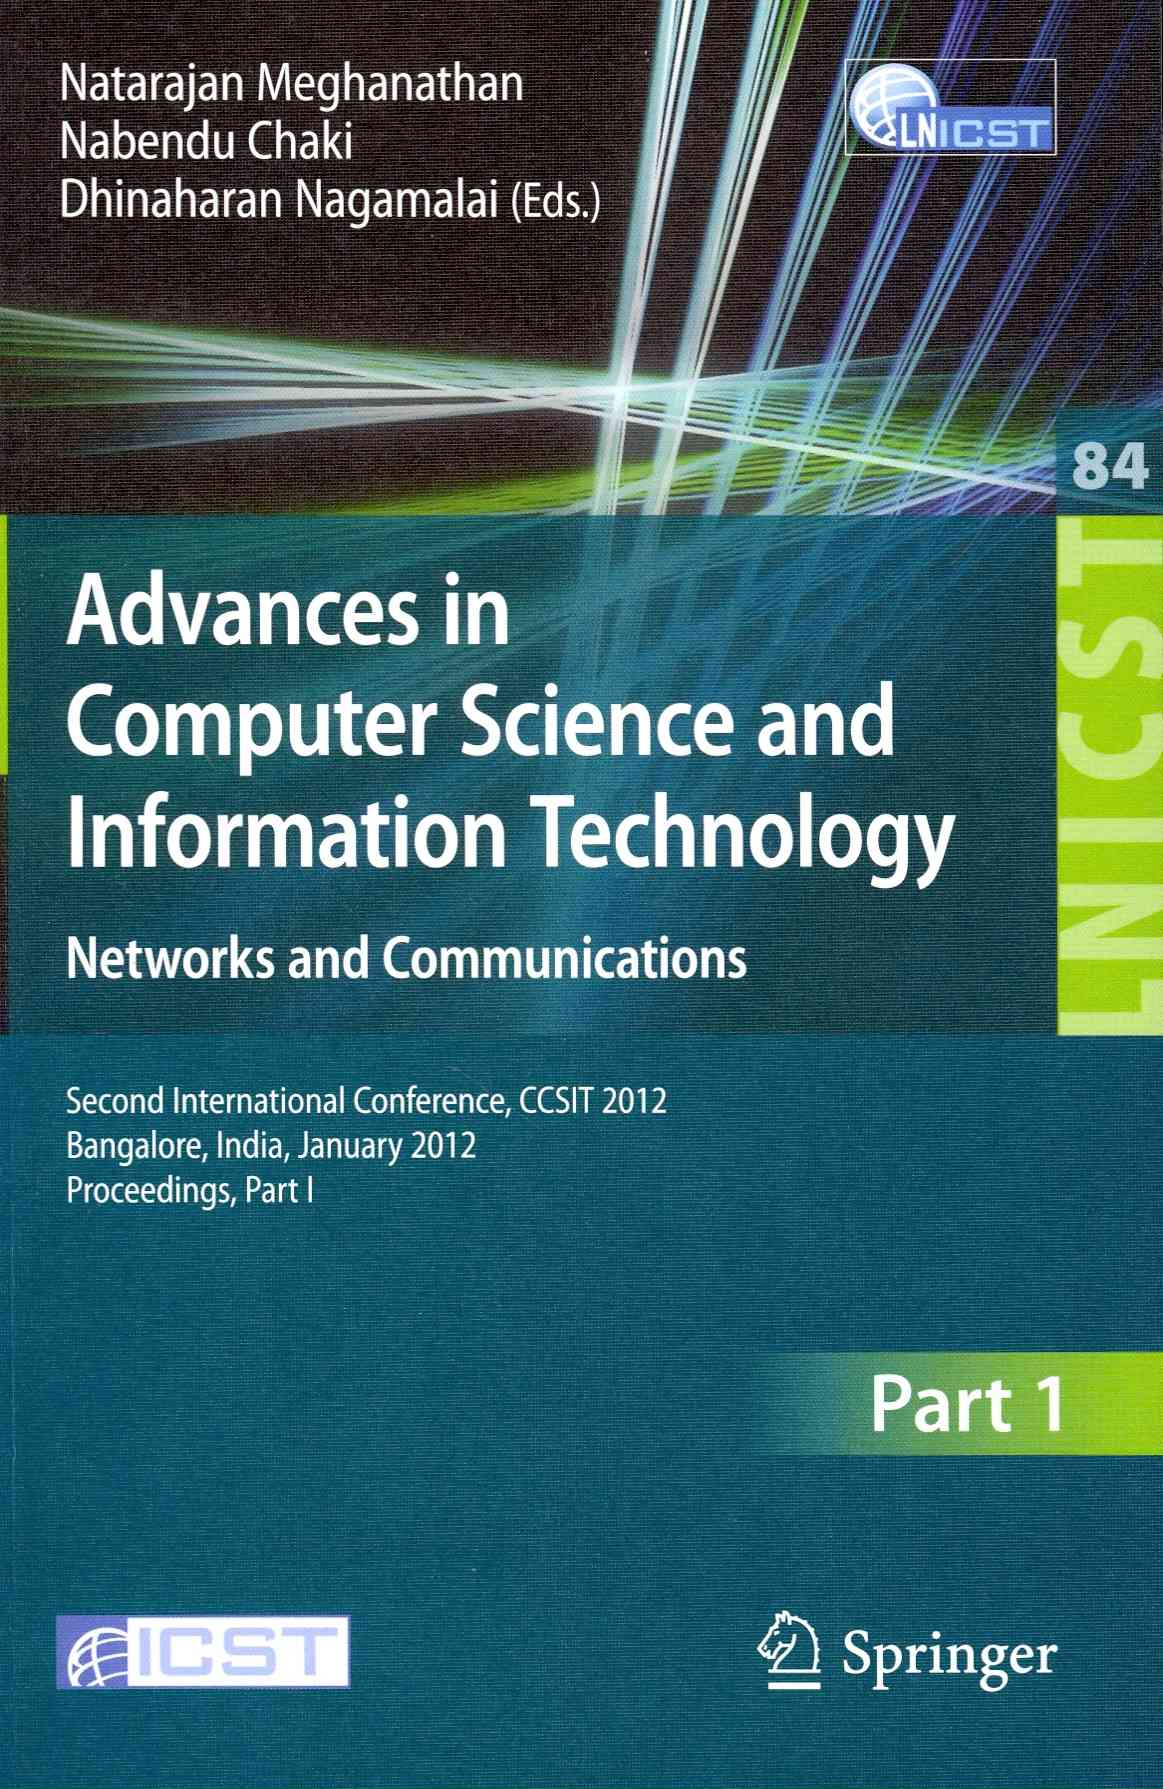 Advances in Computer Science and Information Technology By Meghanathan, Natarajan (EDT)/ Chaki, Nabendu (EDT)/ Nagamalai, Dhinaharan (EDT)